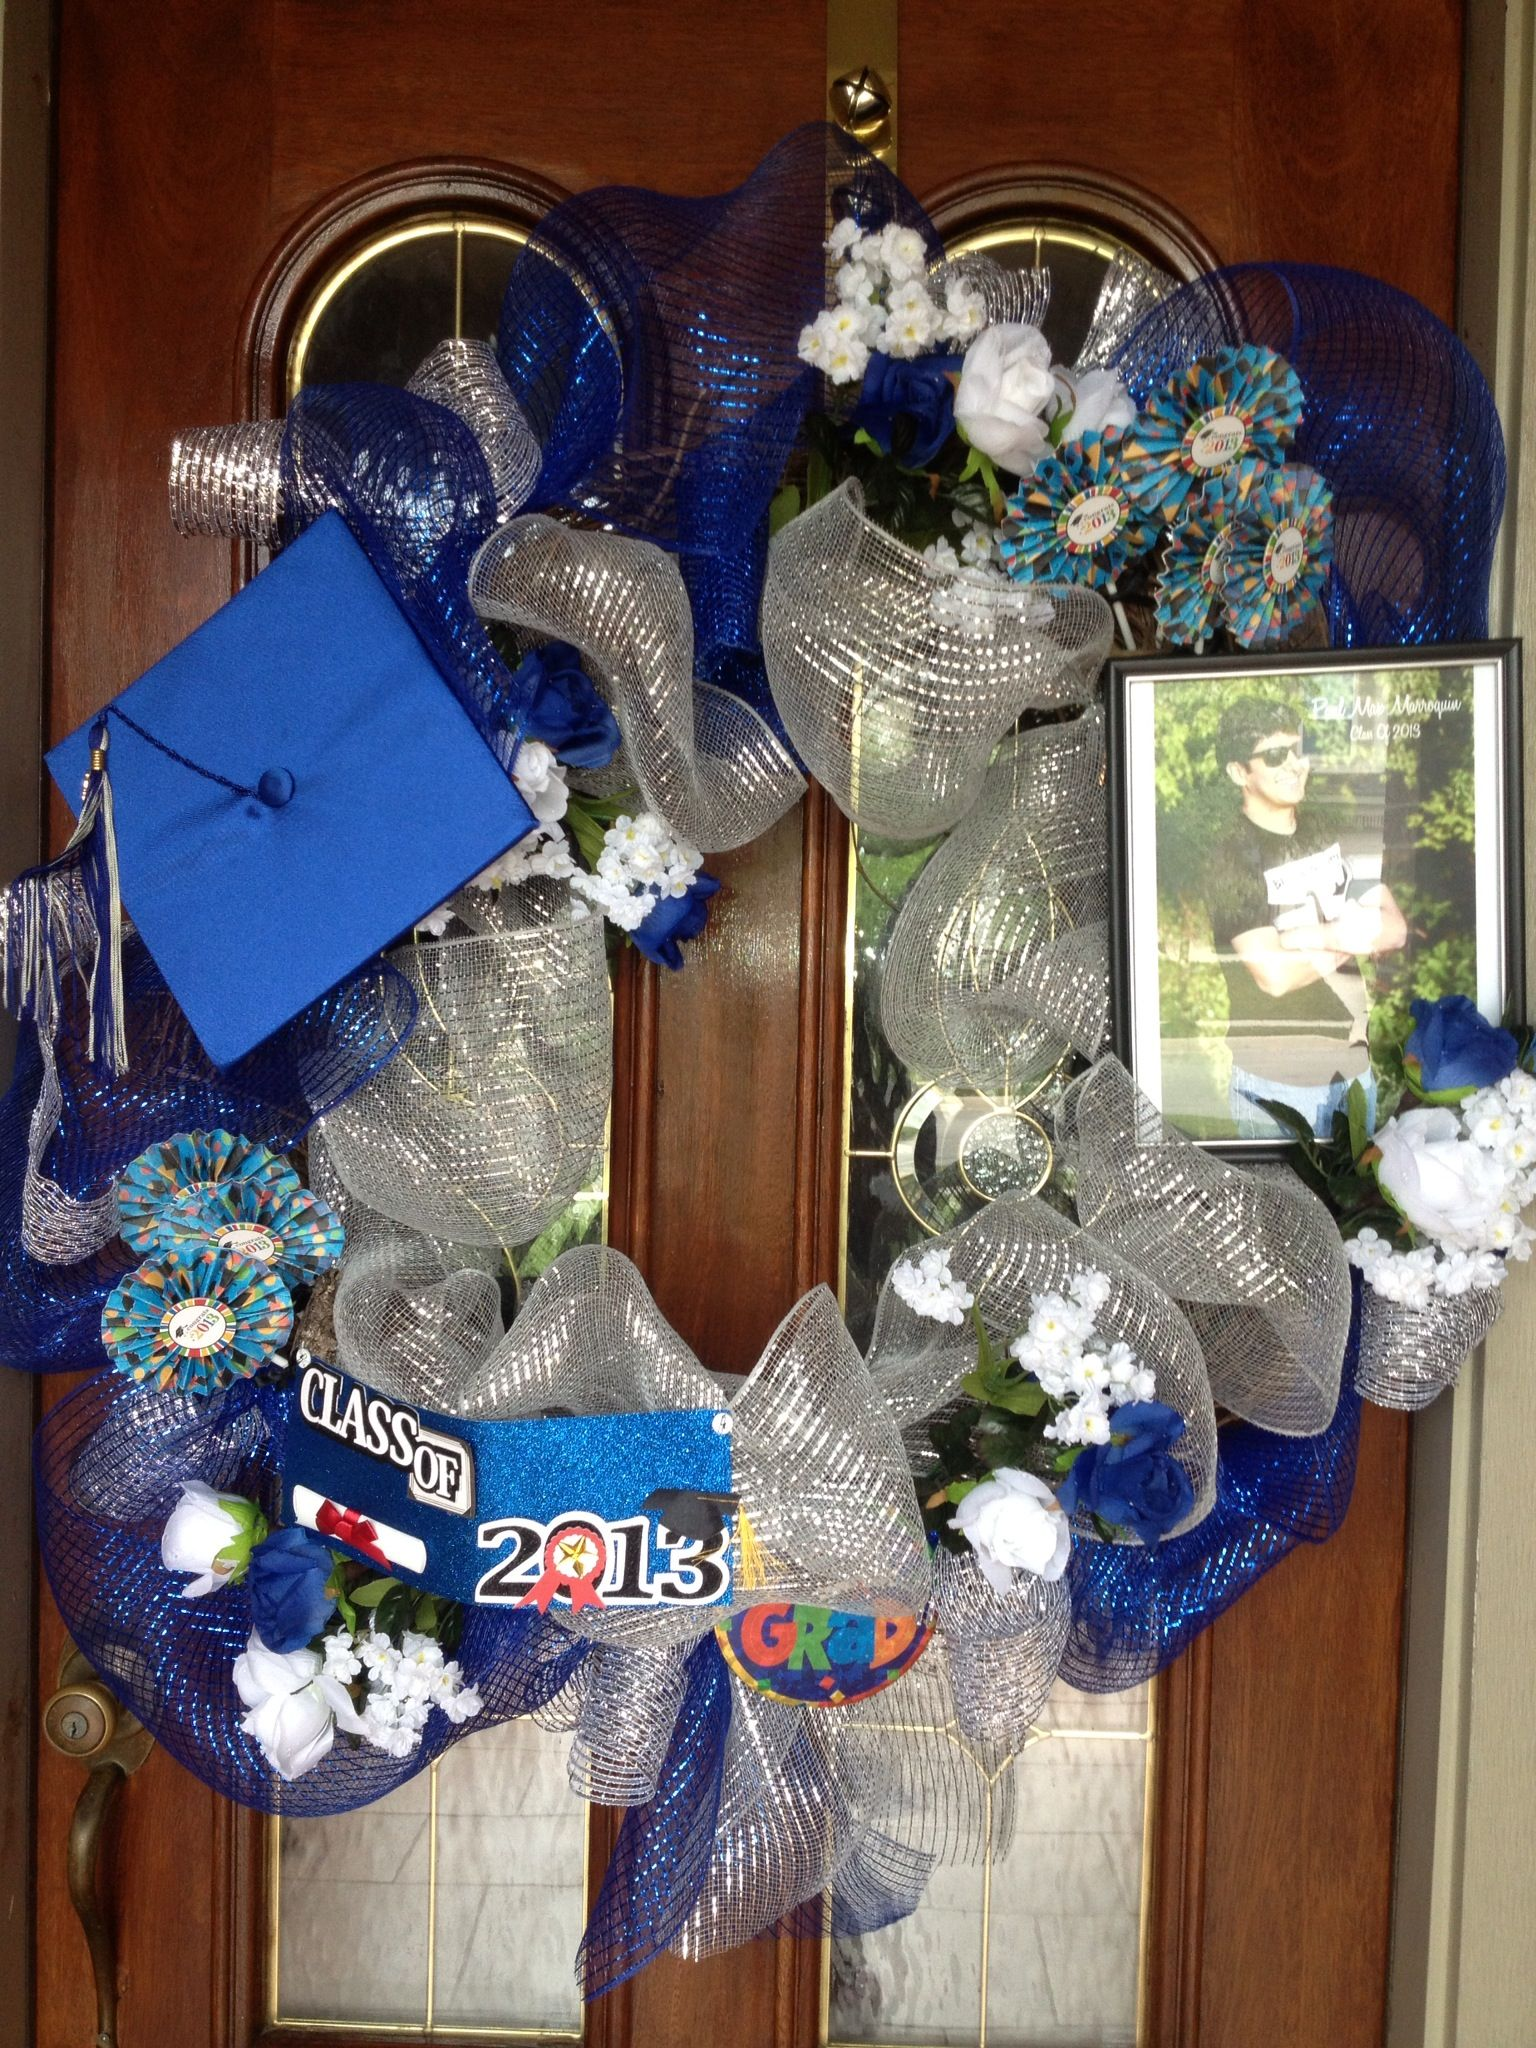 Graduation wreath I made for my son's graduation party.